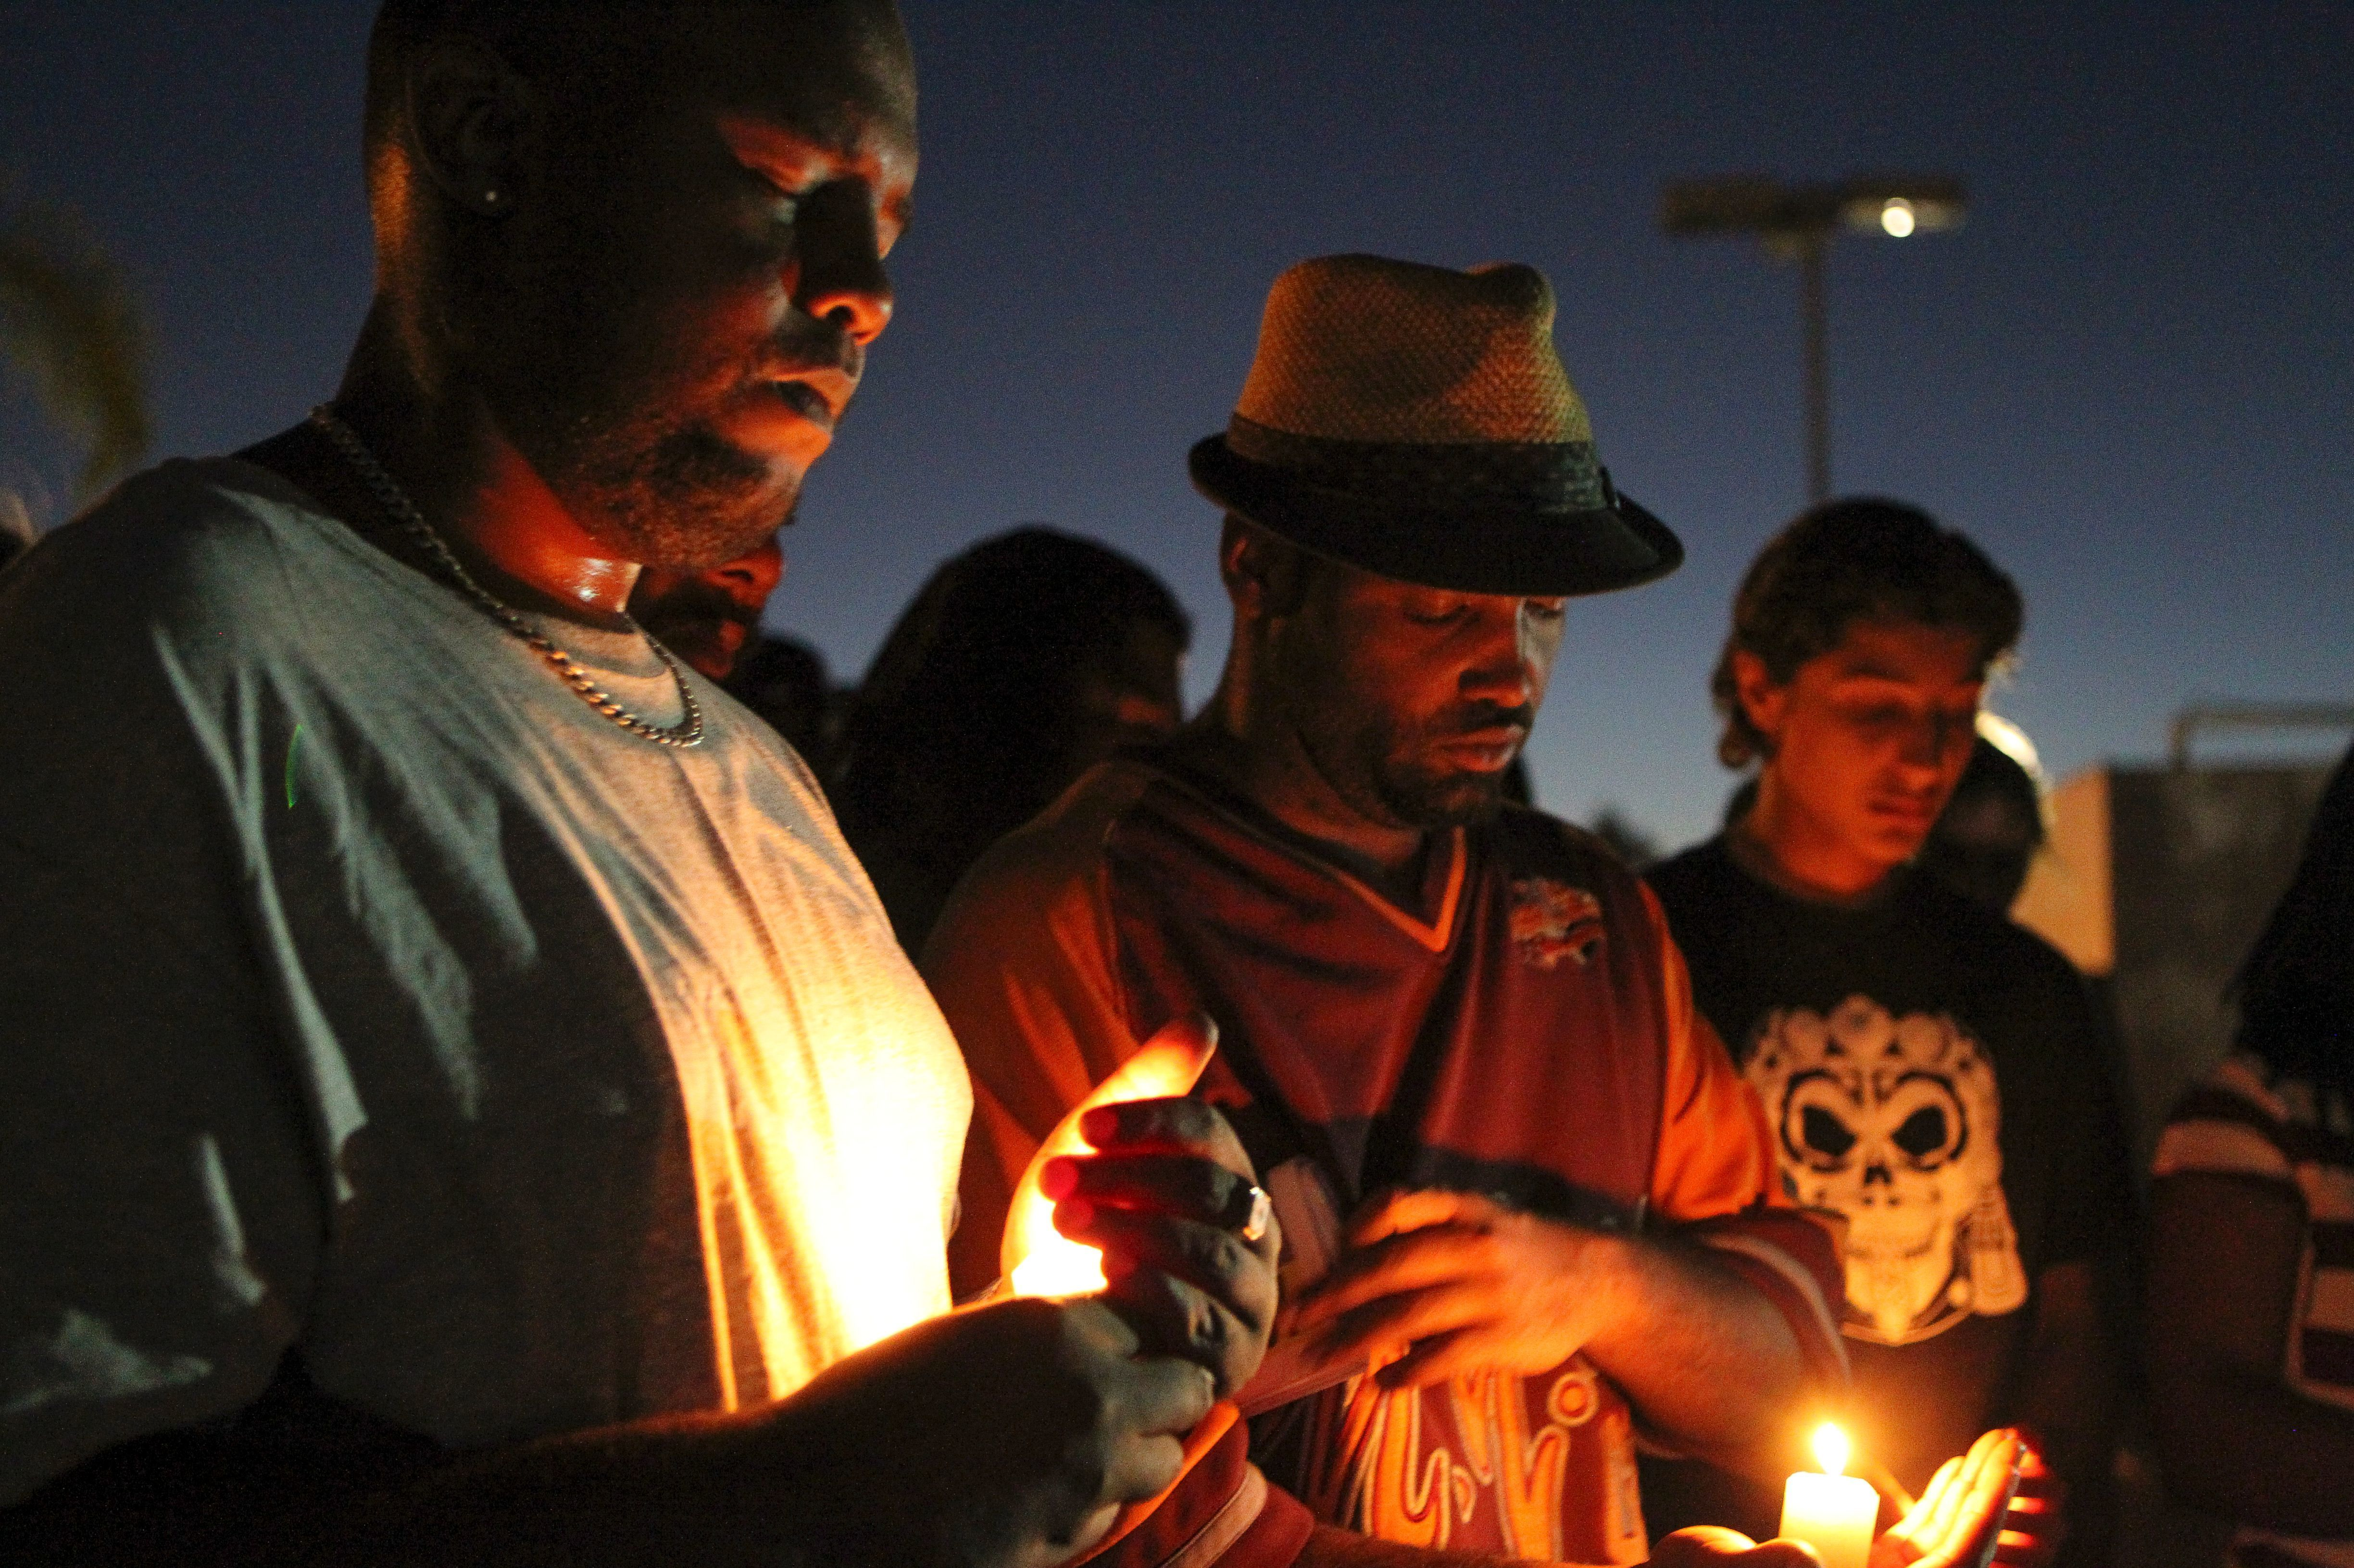 Mourners and activists hold a candlelight vigil during a rally in El Cajon, a suburb of San Diego, Calif., on Wednesday, in protest of the police shooting the day before.